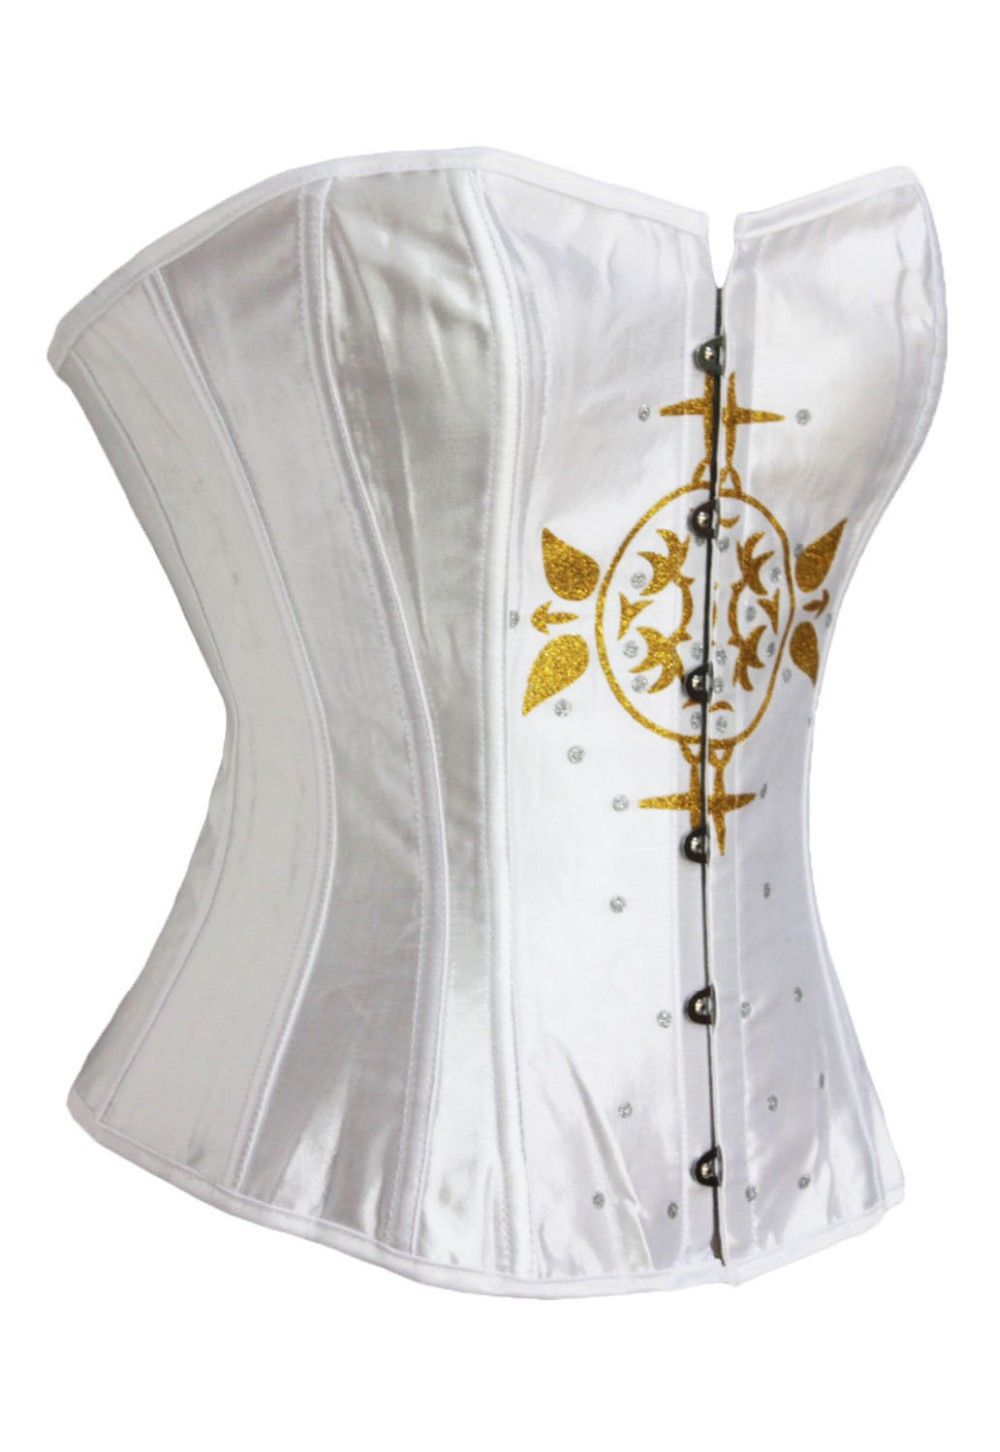 3pcs-White-Pirate-Corset-Costume-with-Pattern-LC5353-3